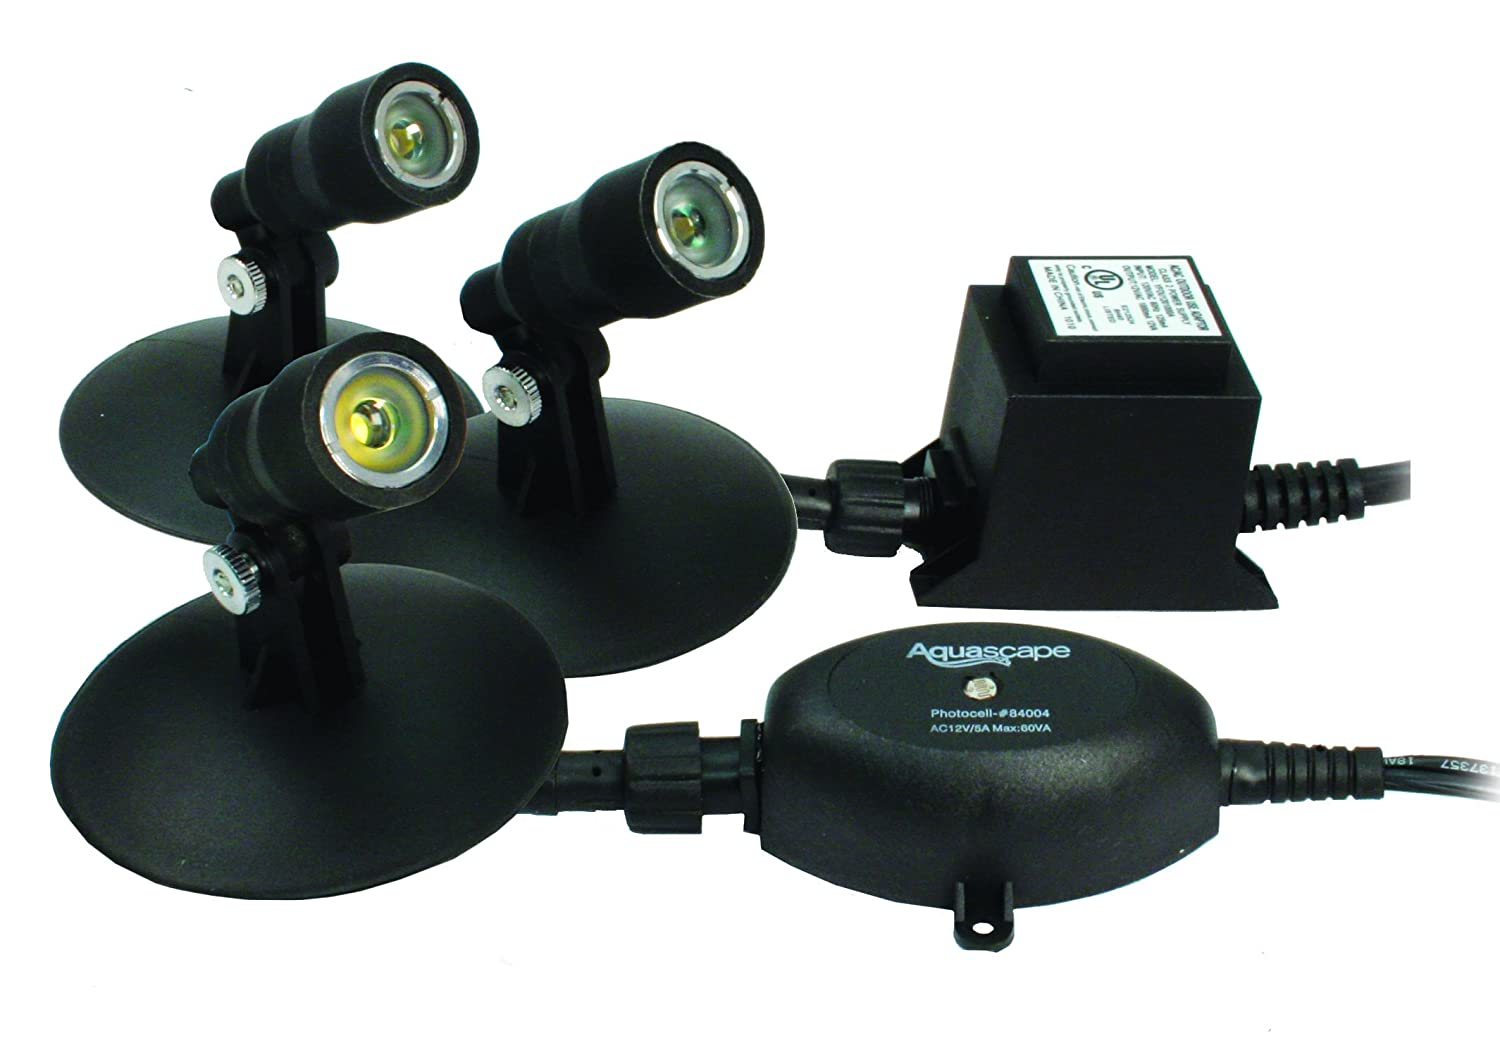 Amazon.com : Aquascape LED 3 Light Kit for Pond Landscaping and ...